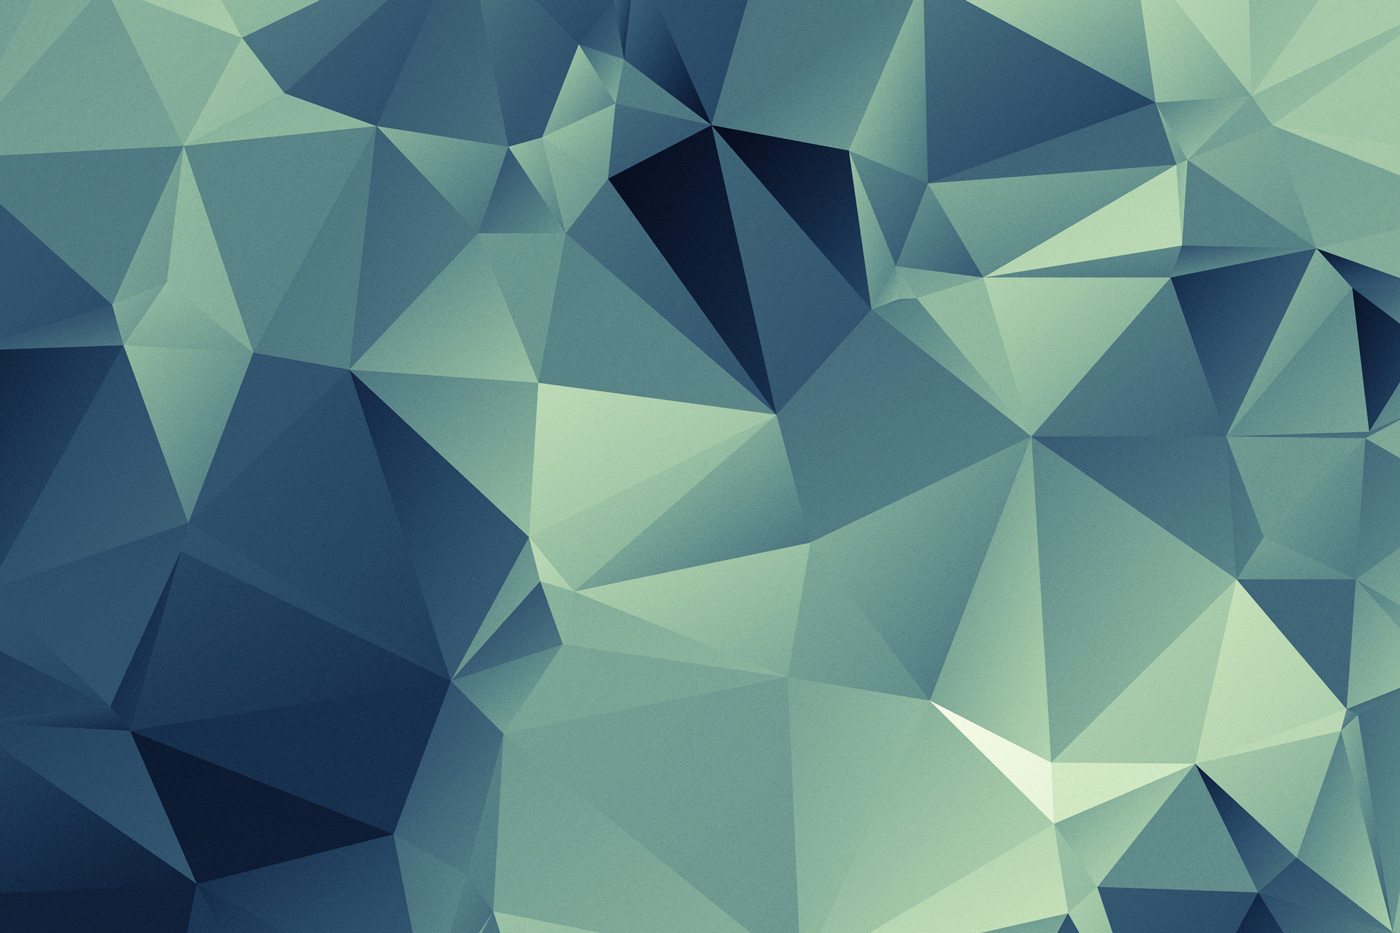 Triangle background turquoise